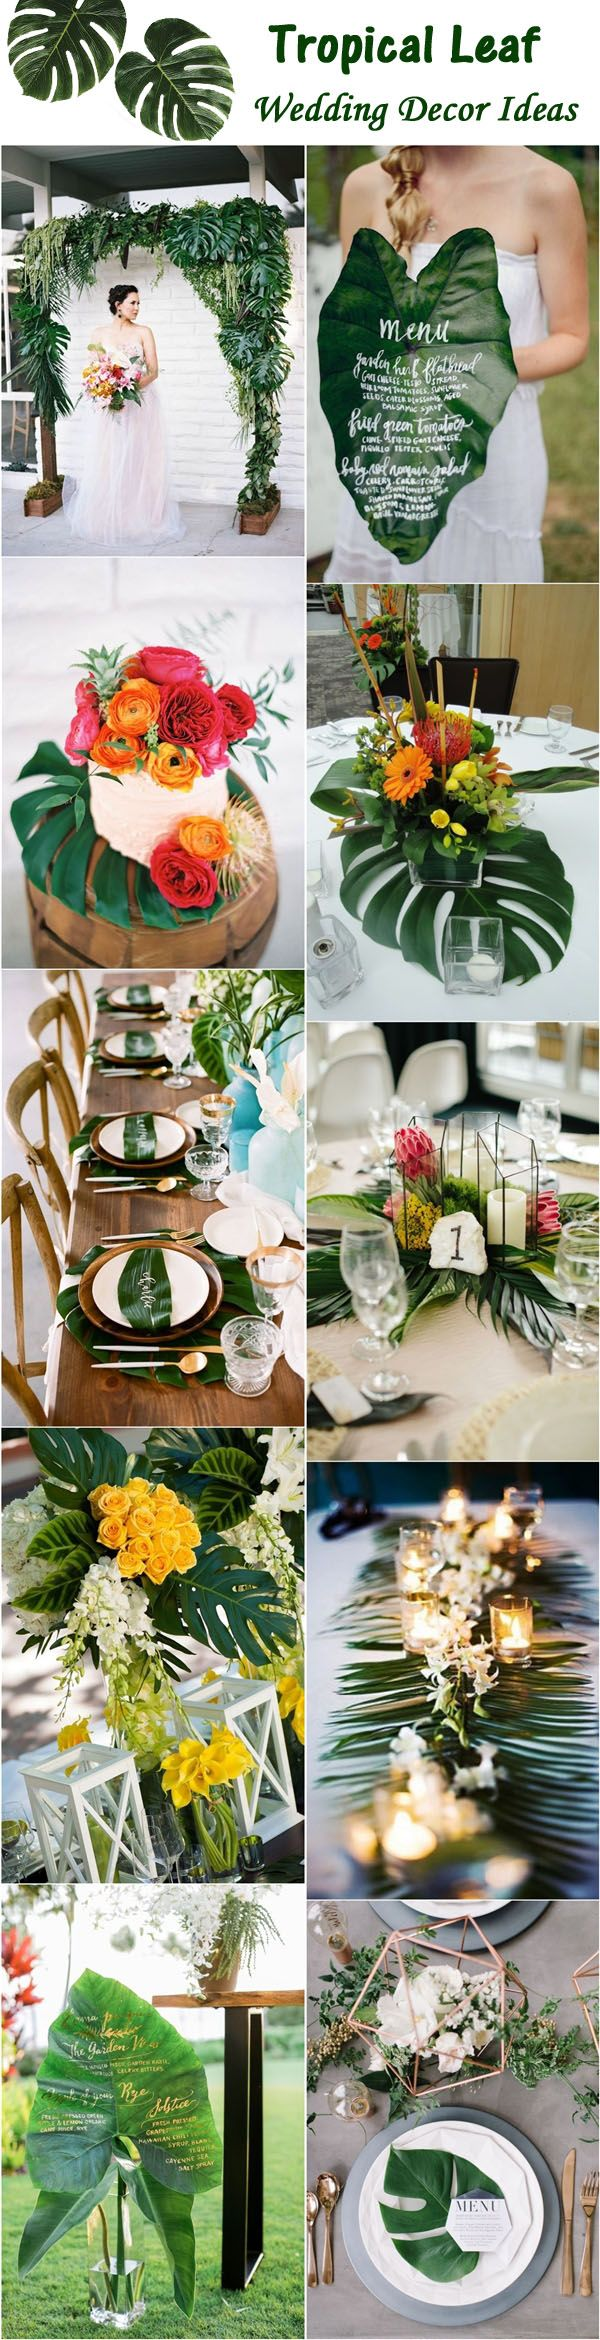 tropical wedding reception decorations 2017 trend tropical leaf greenery wedding decor ideas 8087